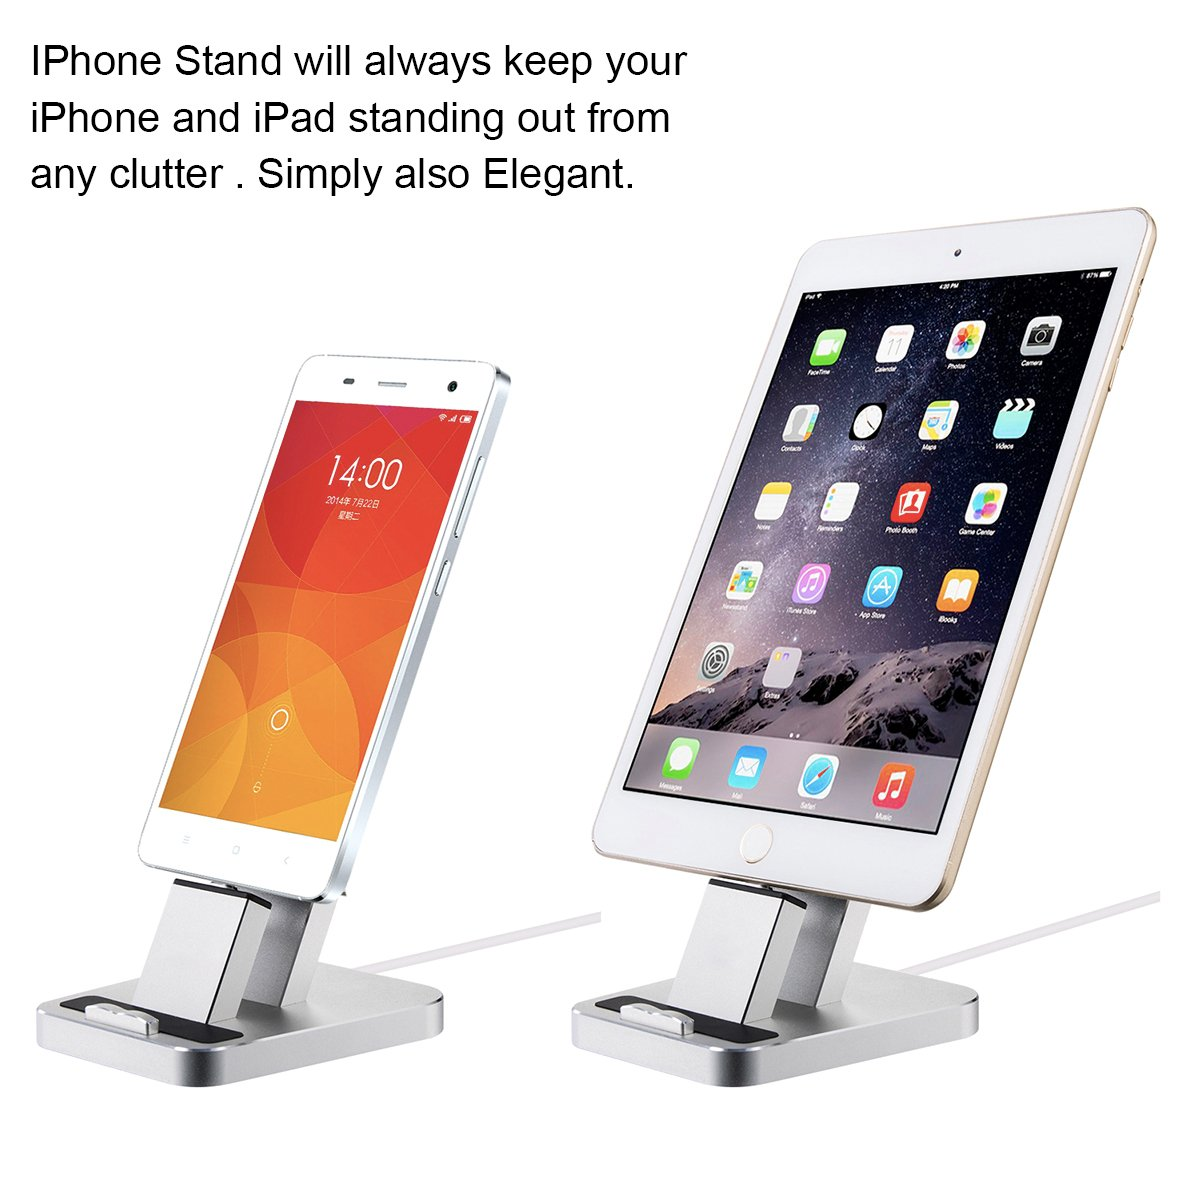 iPhone Dock,Aluminum iPhone Desk Charger Stand Dock Station Holder for iPhone 7/7Plus/6S/ 6/6 Plus/SE/5S and Samsung S7/S7 eage (Sliver)